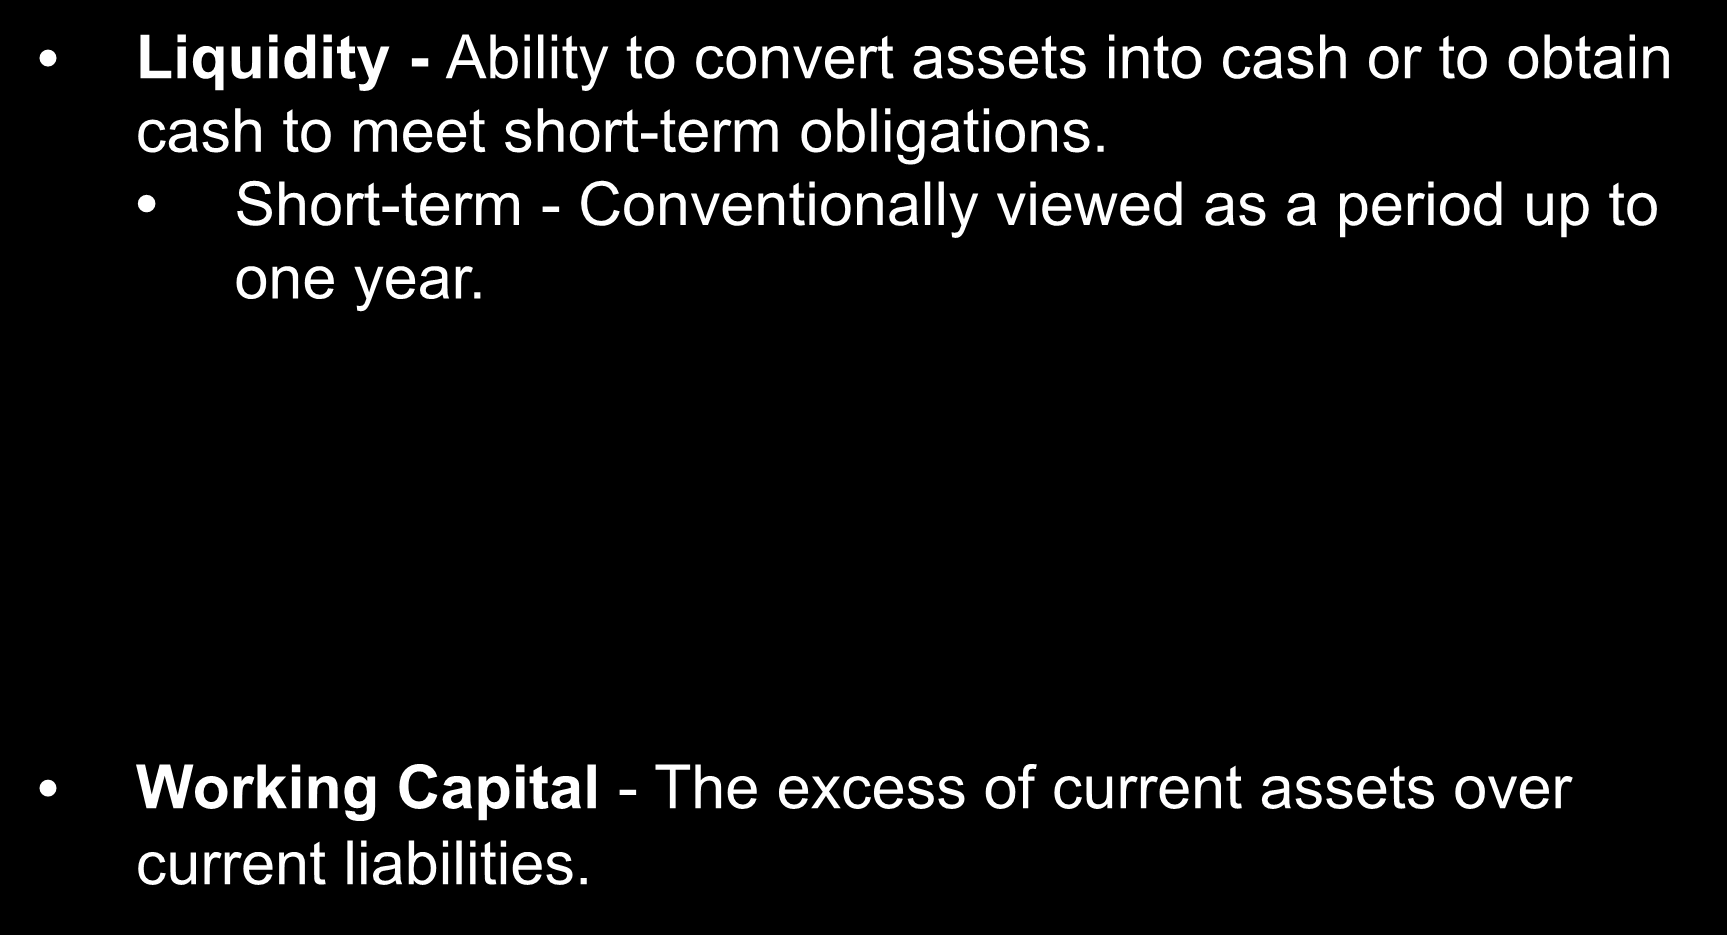 10-2 Liquidity and Working Capital Basics Liquidity - Ability to convert assets into cash or to obtain cash to meet short-term obligations.